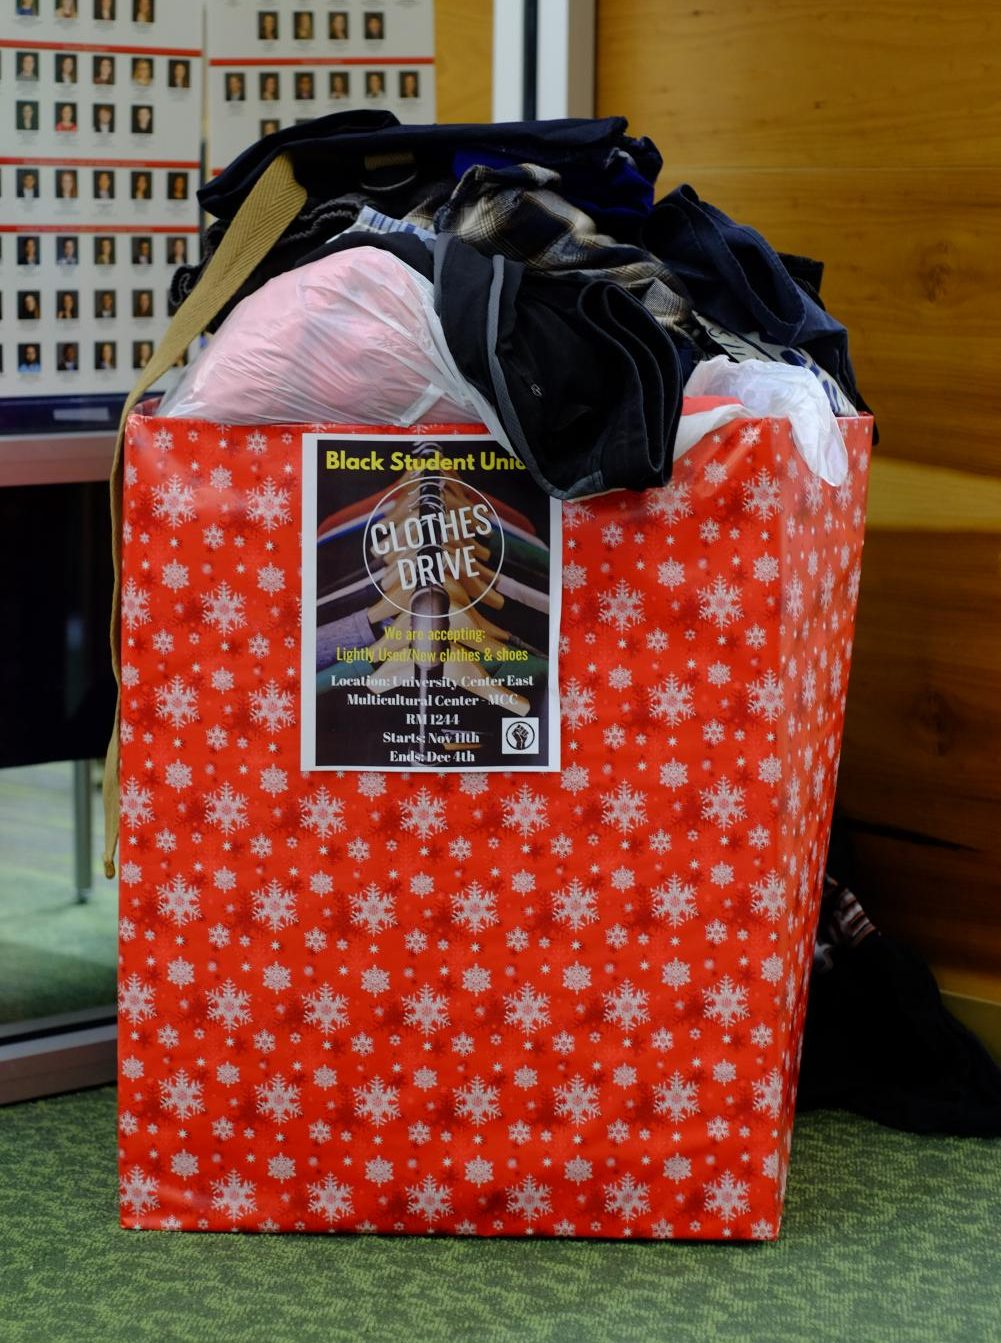 The Black Student Union hosted their clothes drive from Nov. 11 to Dec. 4 in the Multicultural Center.